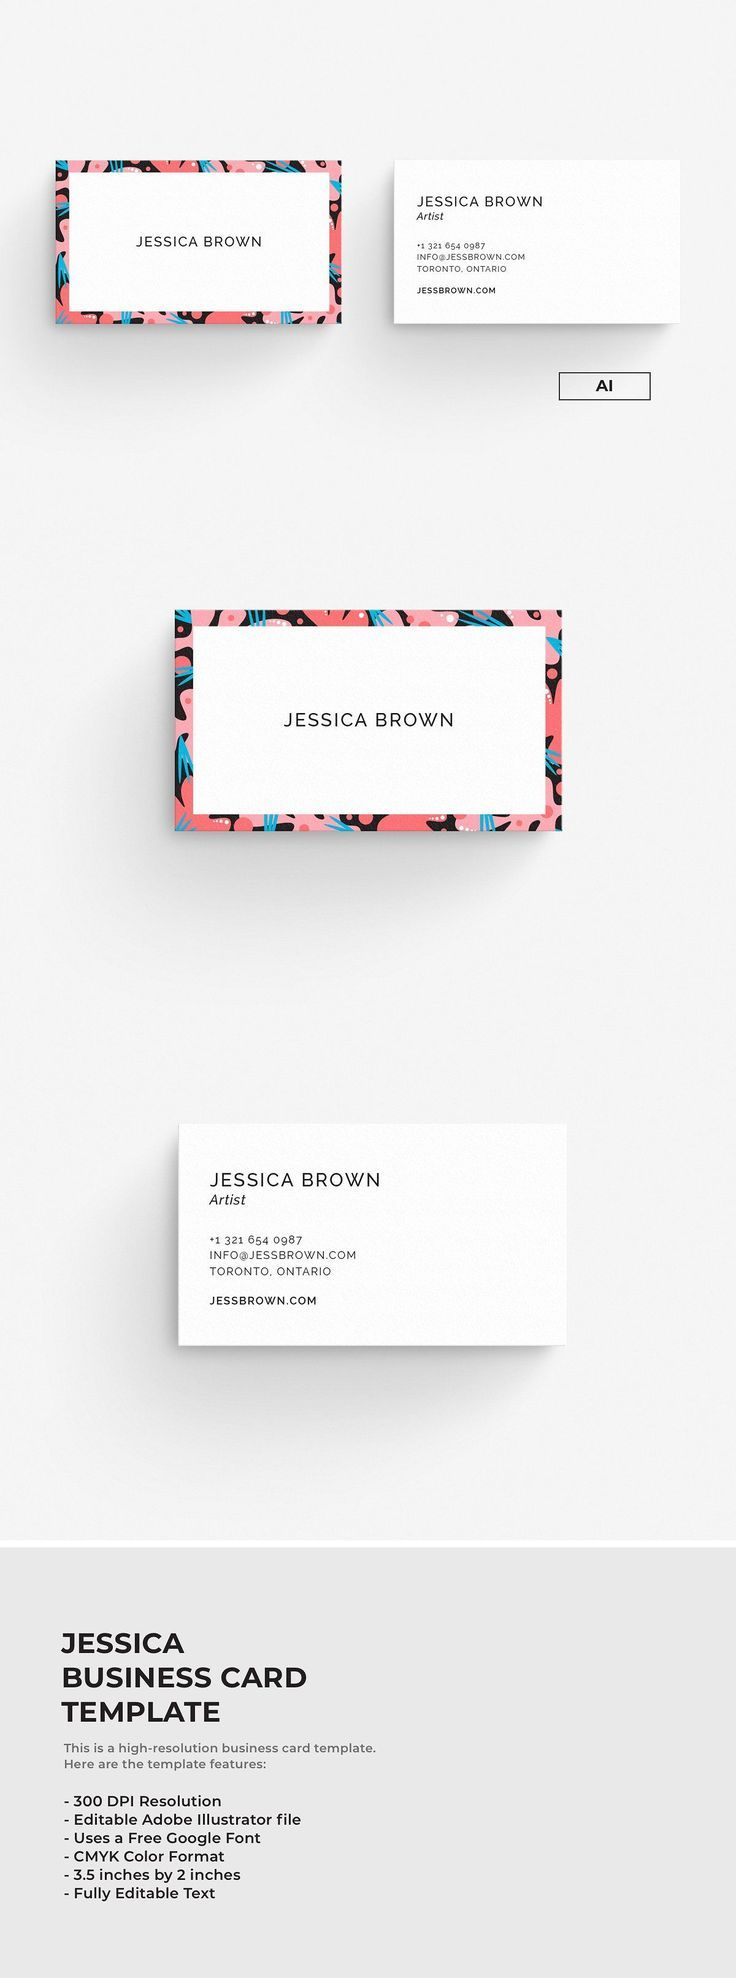 Jessica – Business Card Template. A high-resolution card template editable in Il…